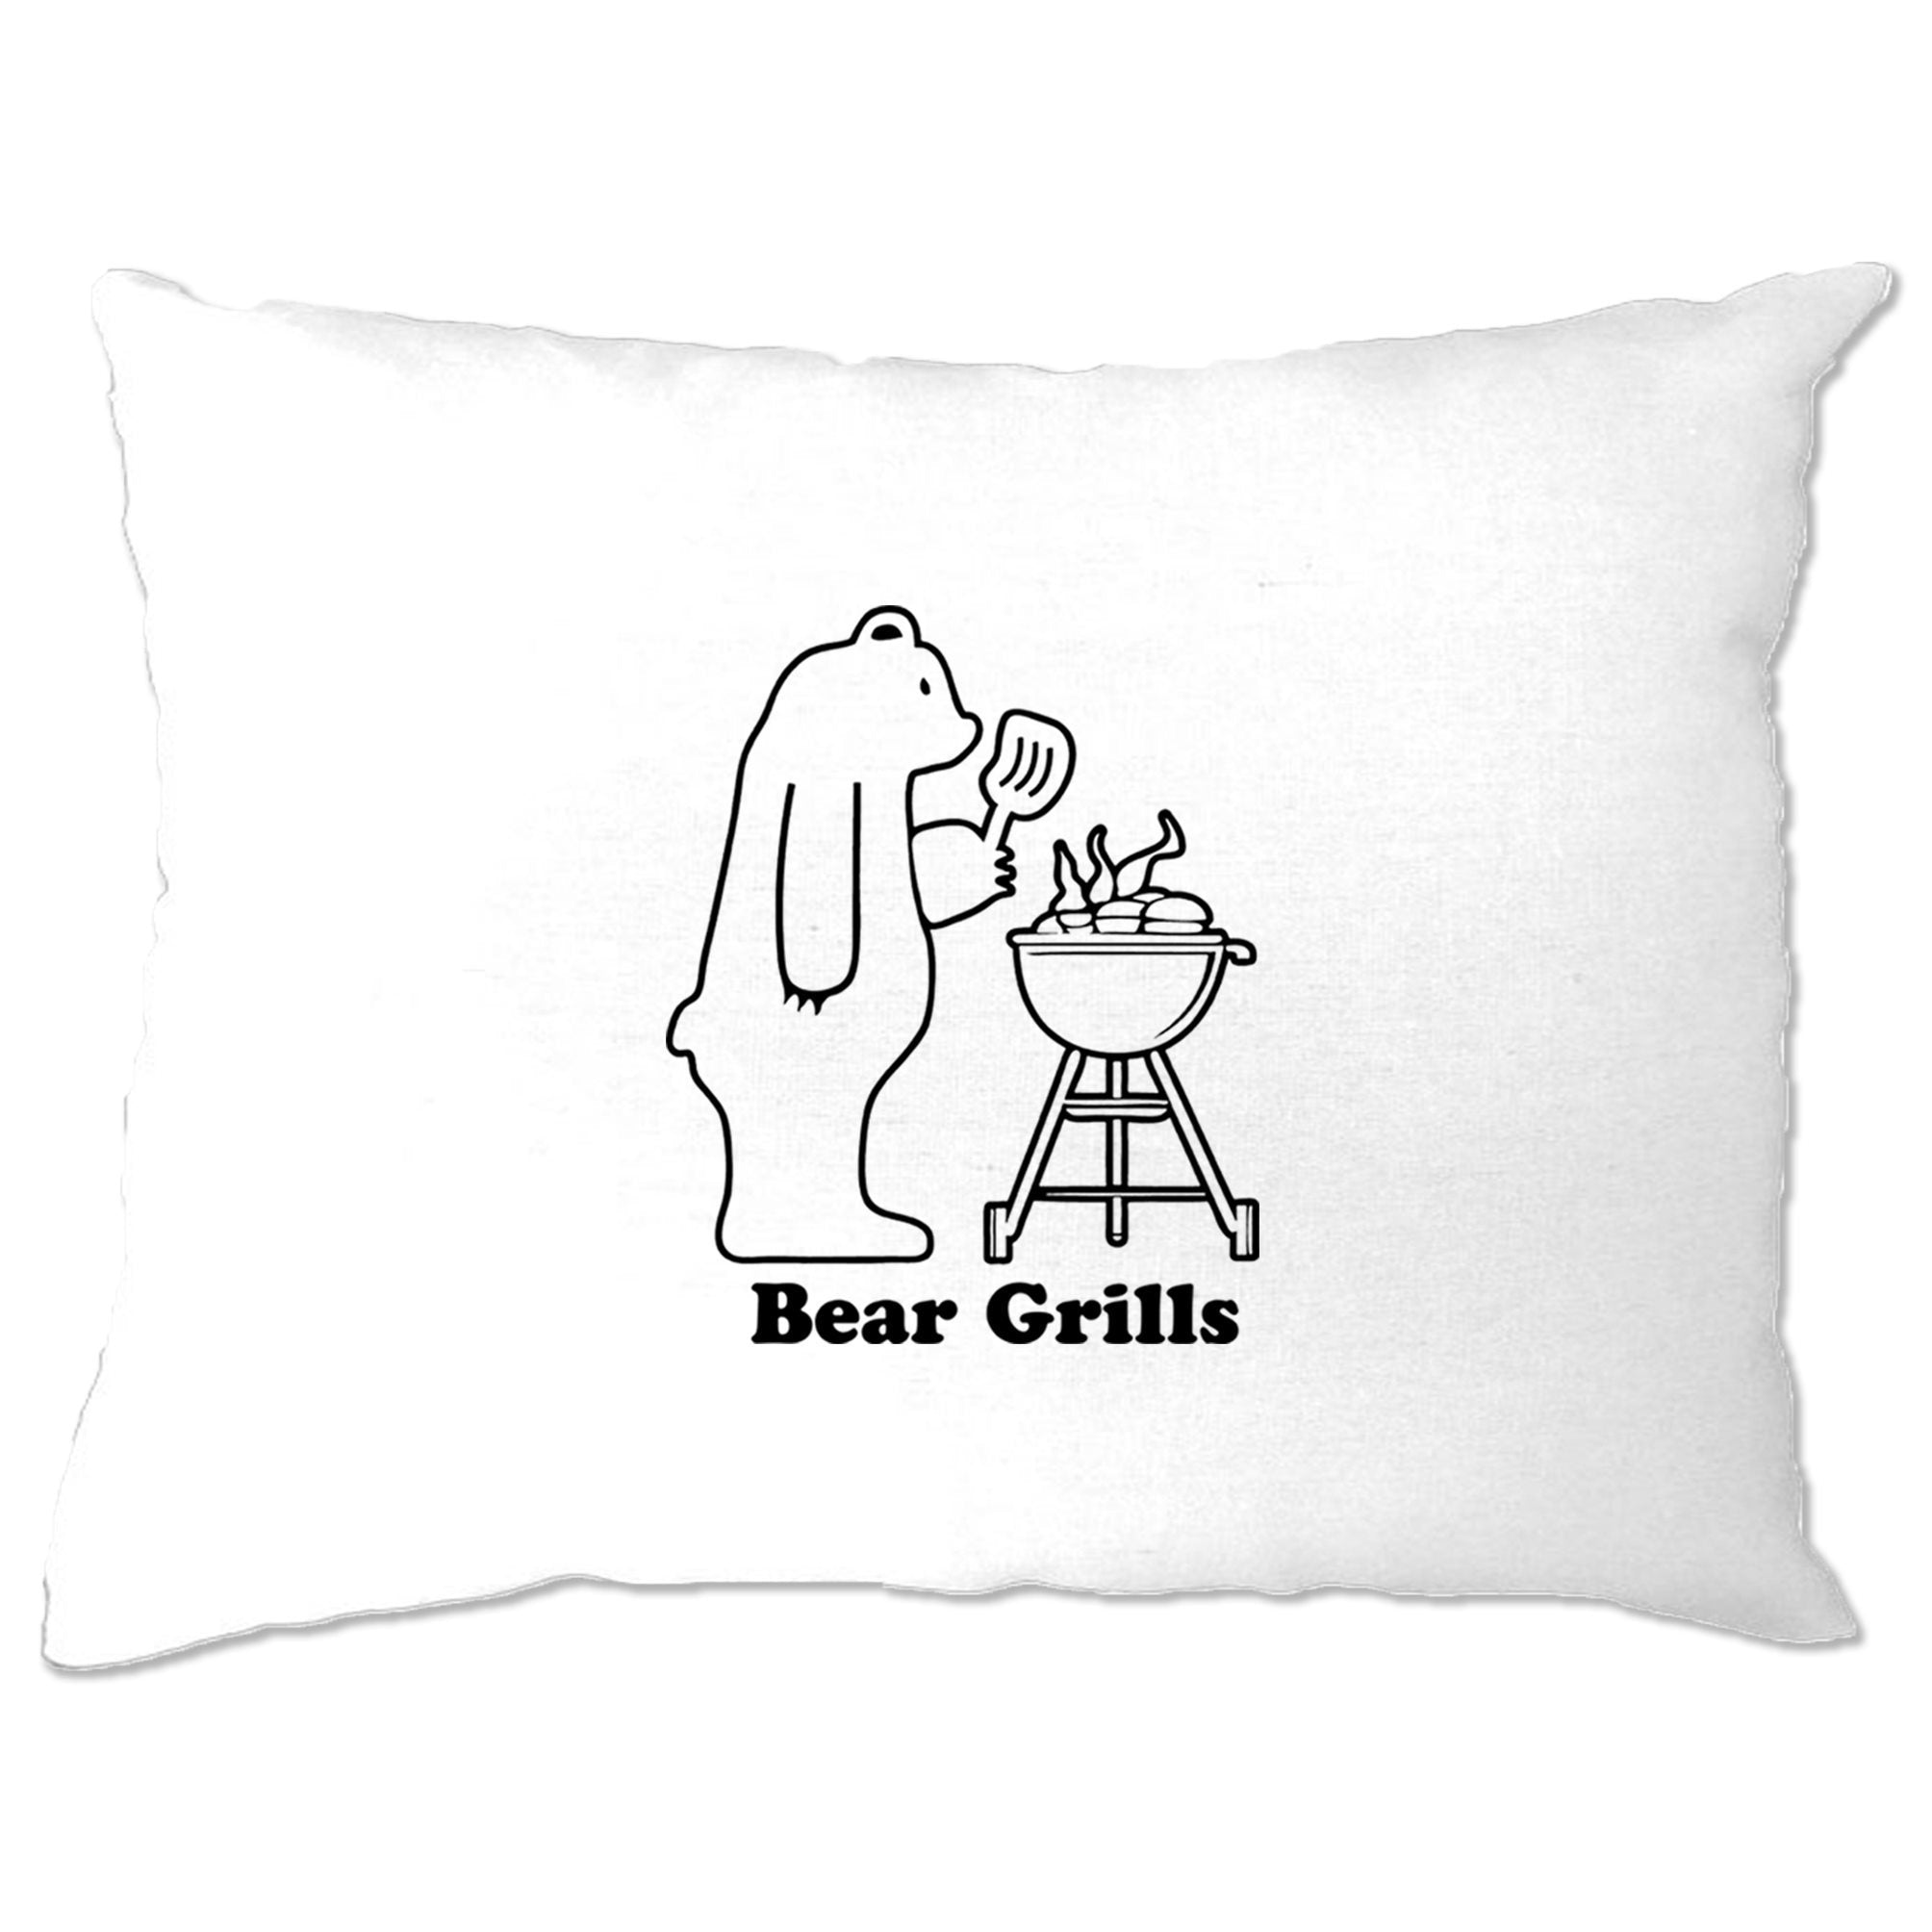 Novelty Barbecue Pillow Case Grilling Bear Grills Joke